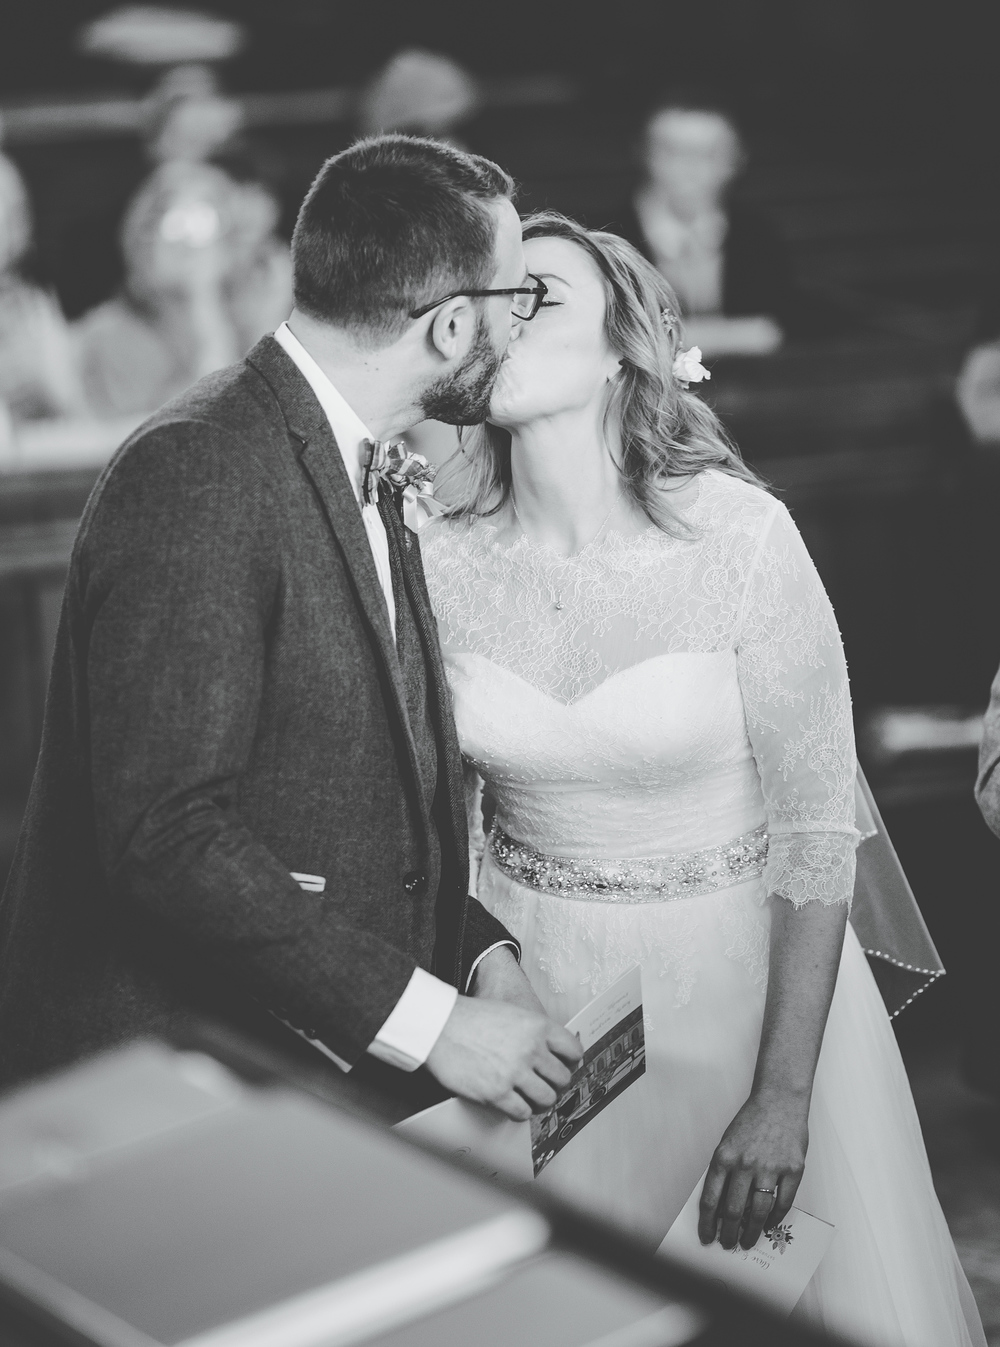 The bride and grooms first kiss - wedding photographer in cheshire